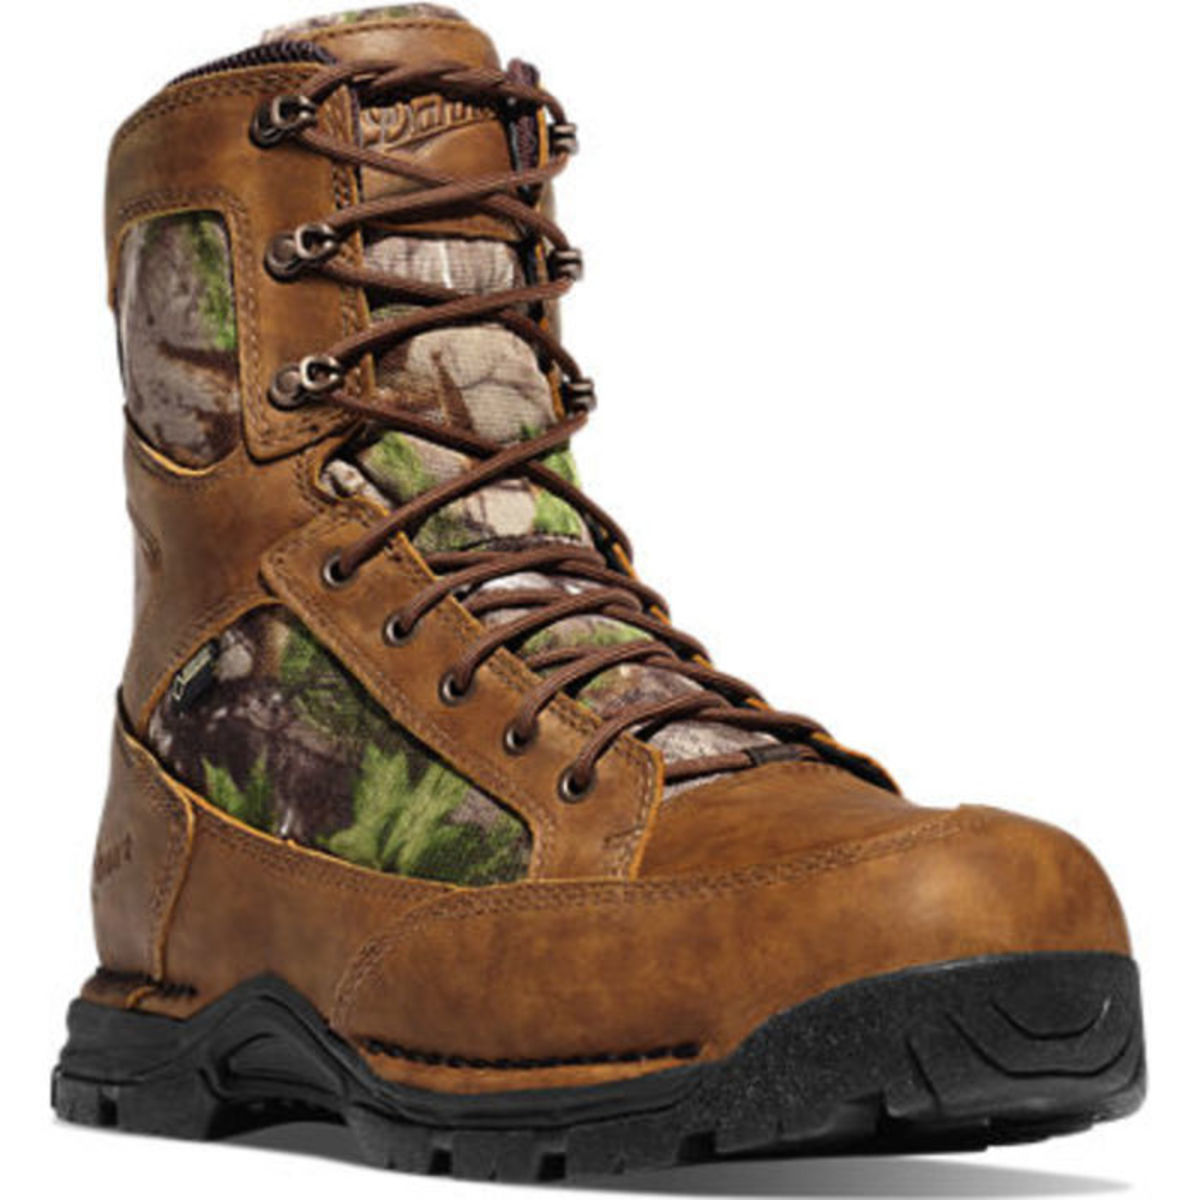 Headline for Best camo Hunting boots Reviews 2015| uninsulated for youth boys